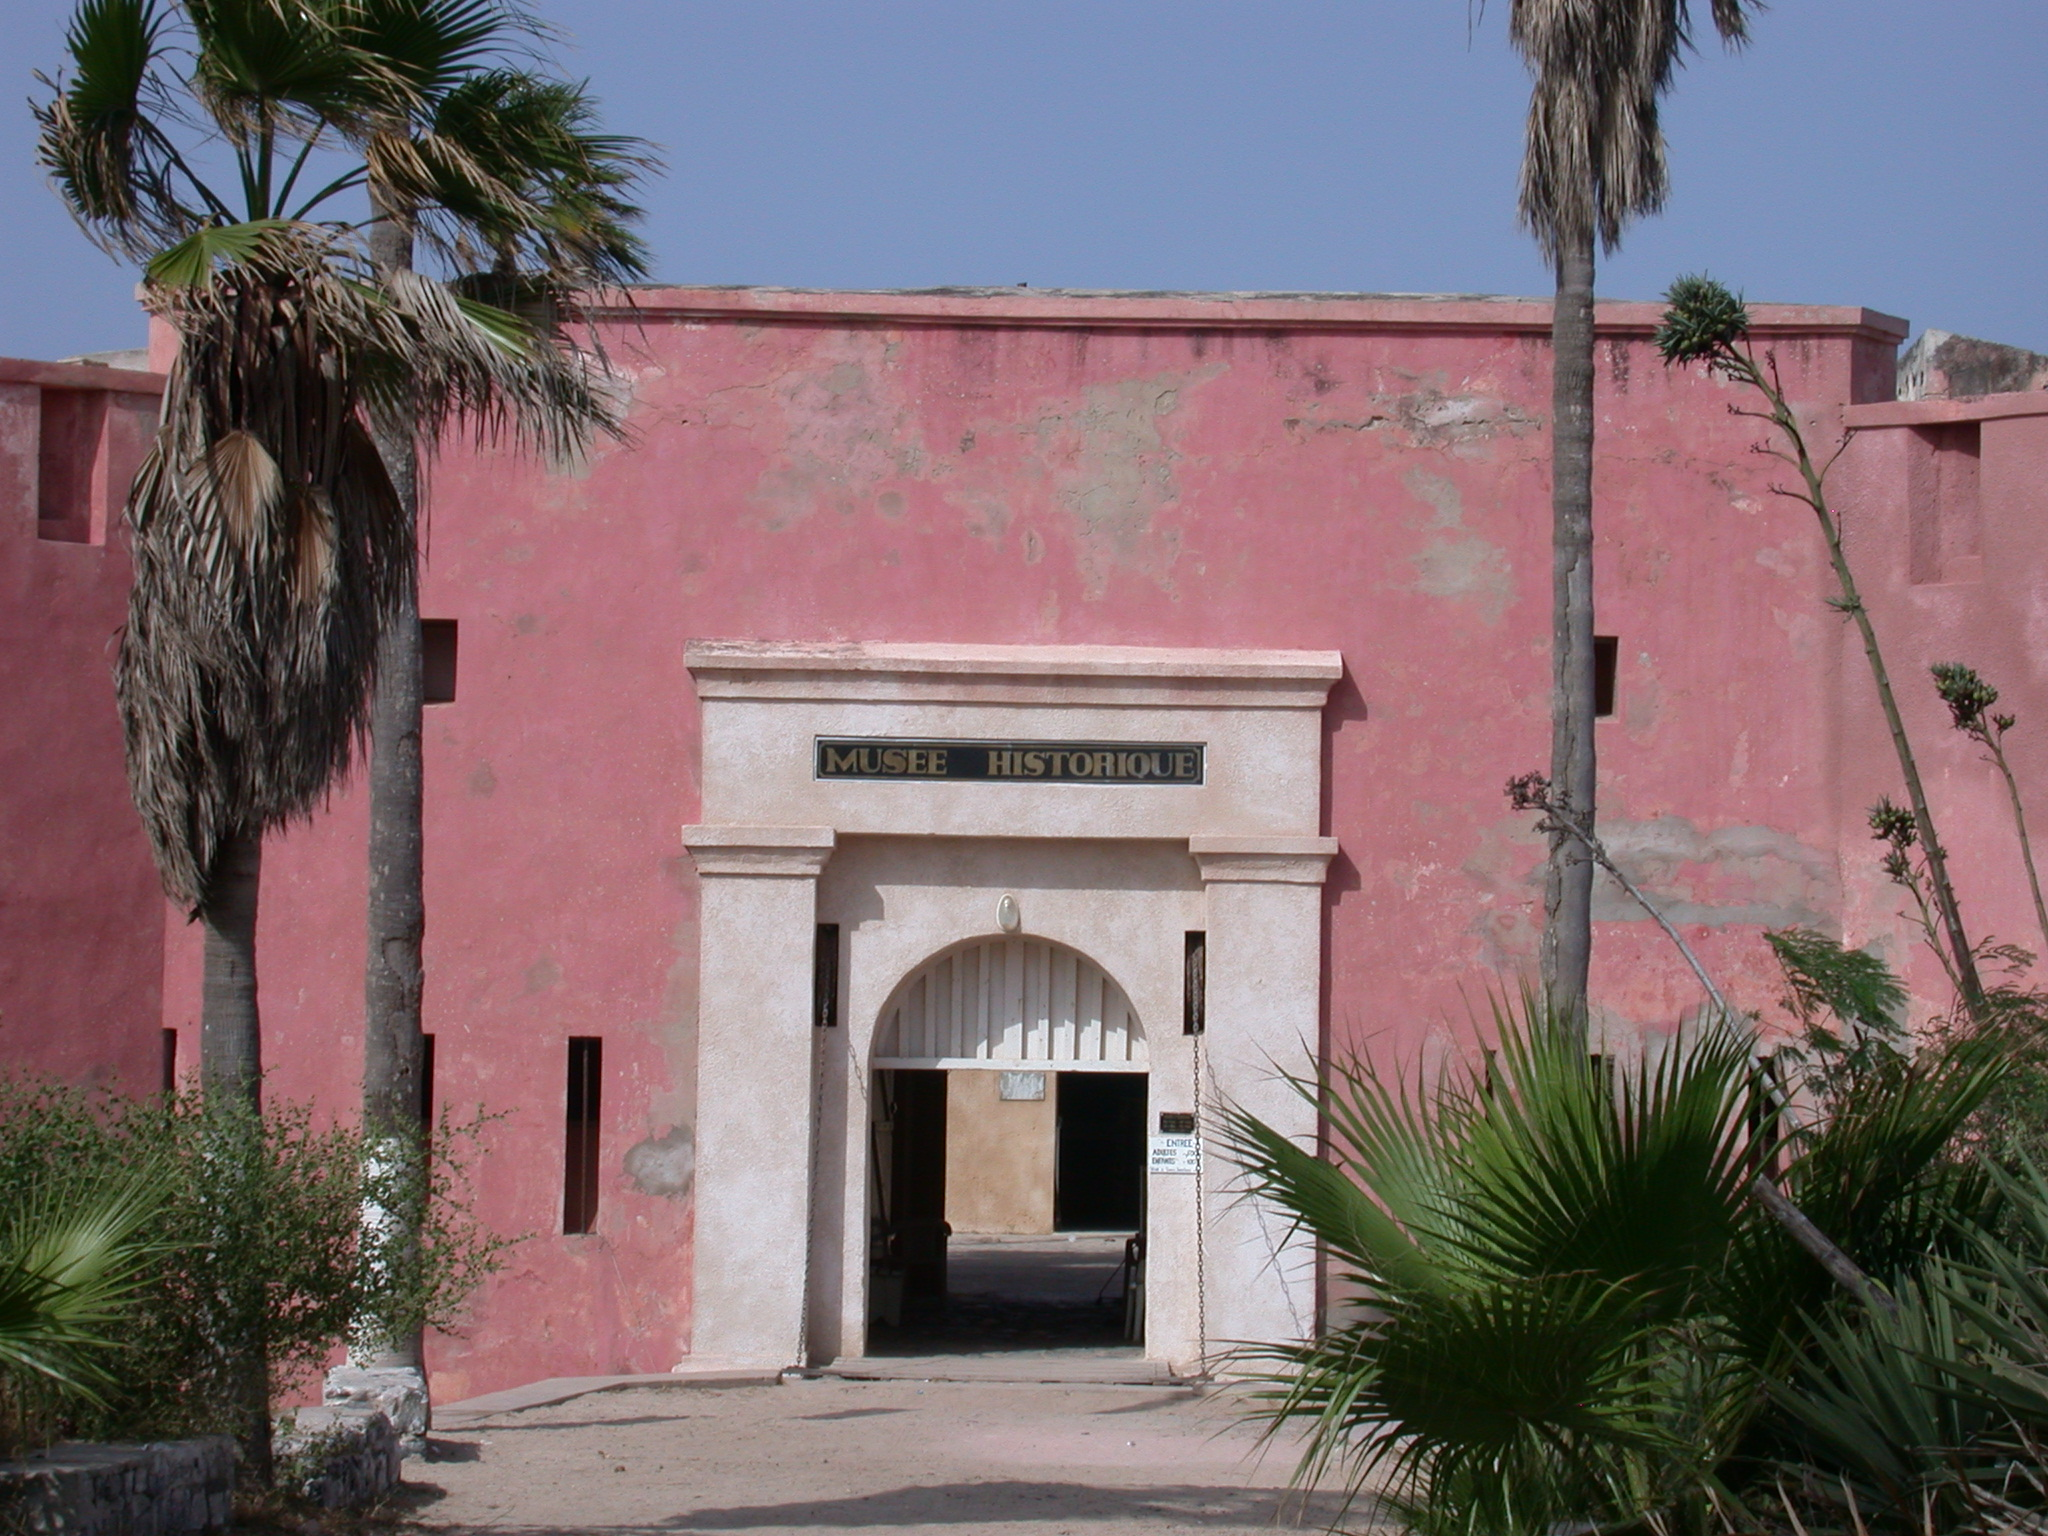 Entrance of Musee Historique IFAN at Ile de Goree, Dakar, Senegal